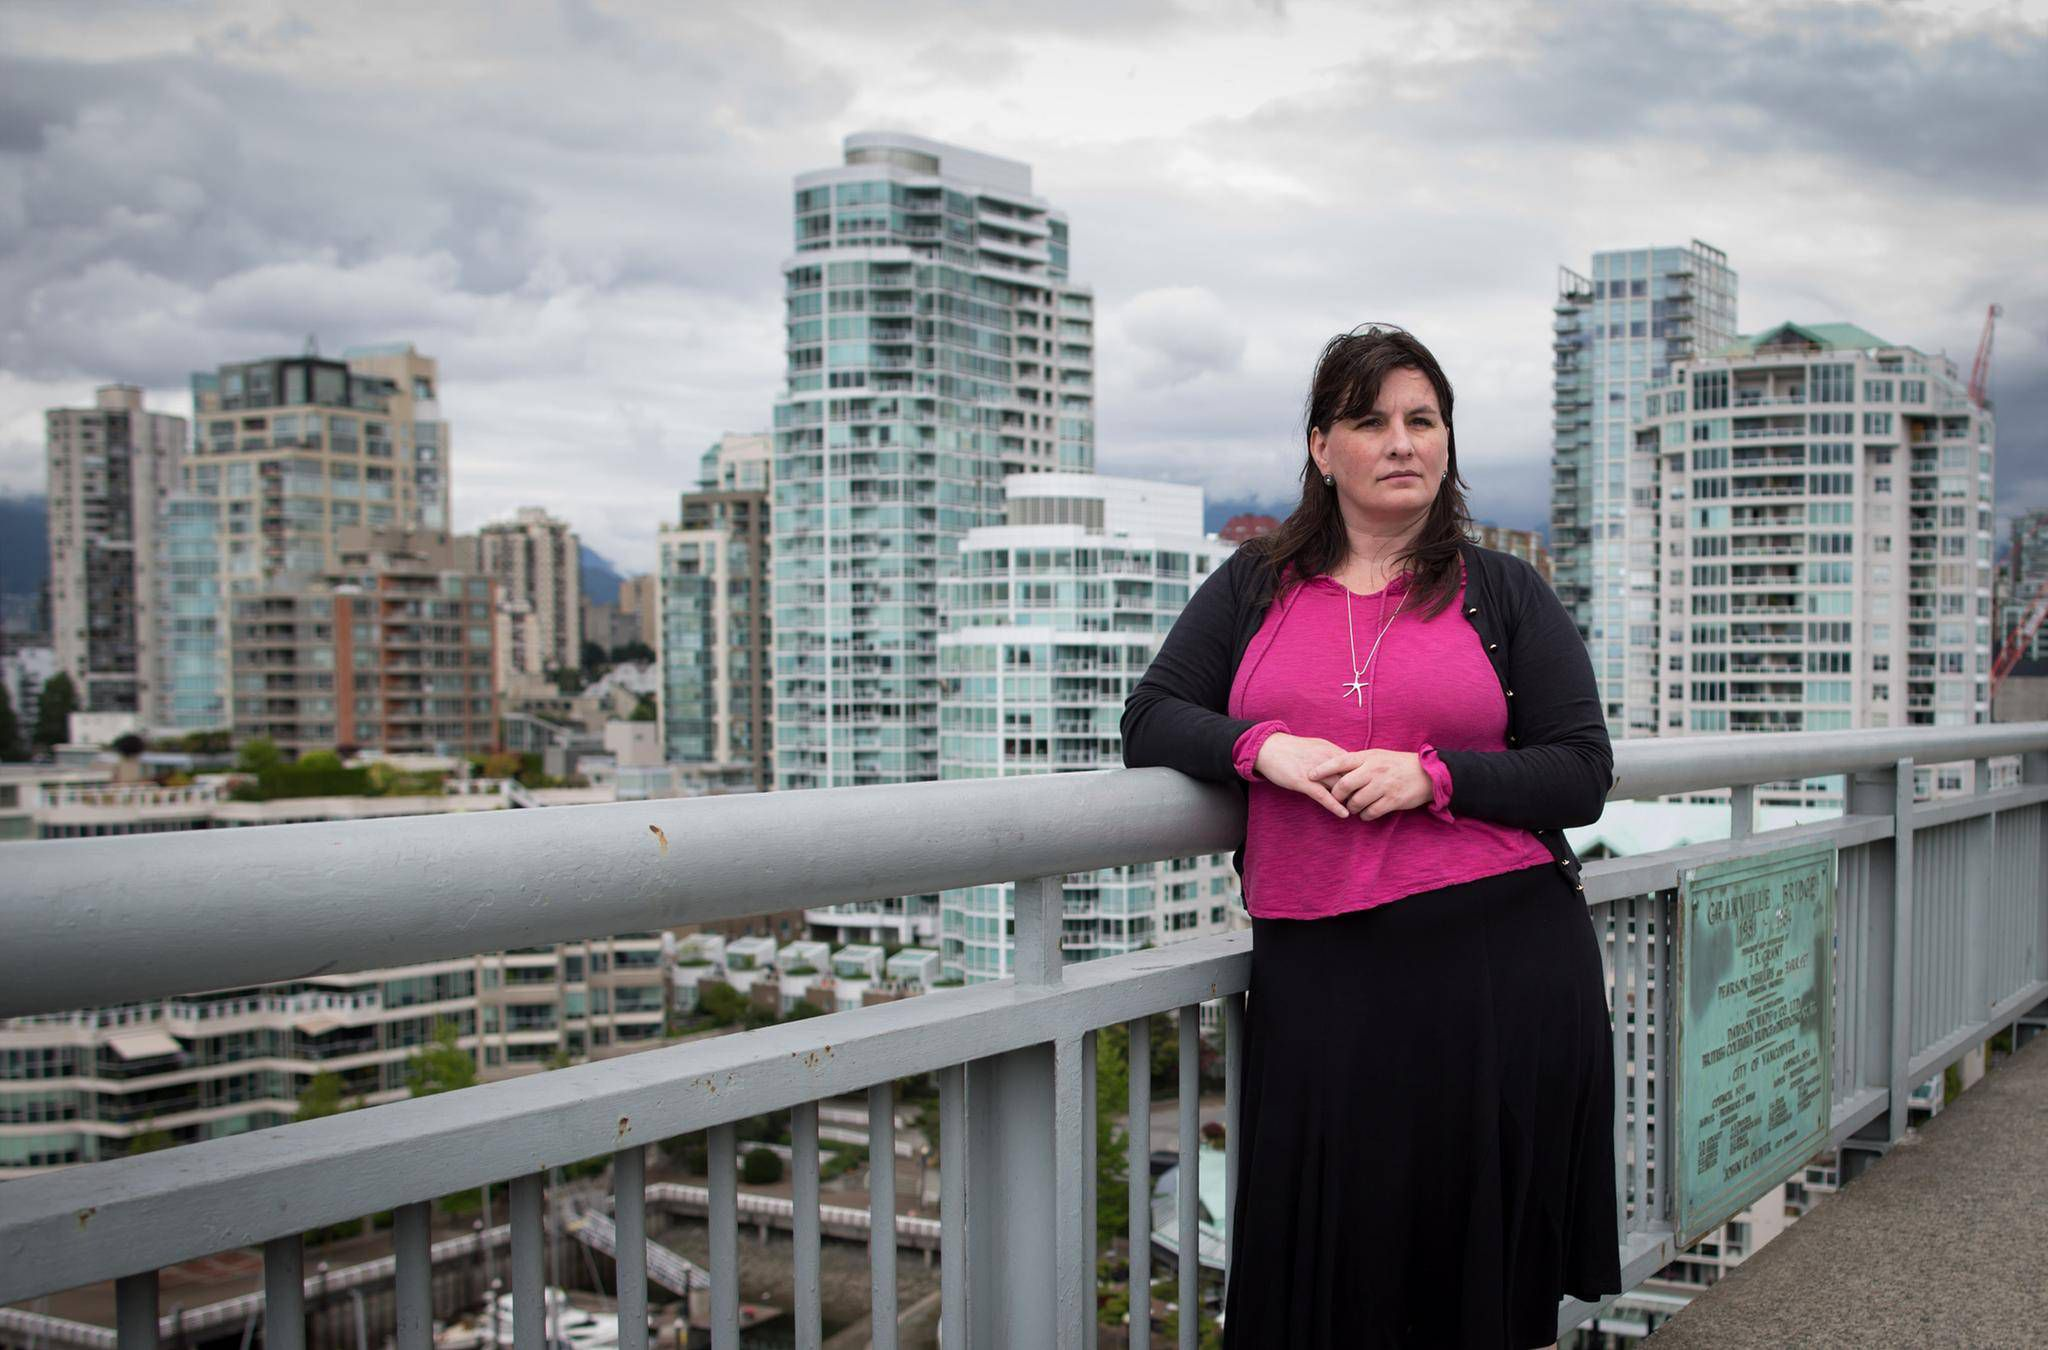 Airbnb Blamed For Increasing Pressures On Rental Markets  The